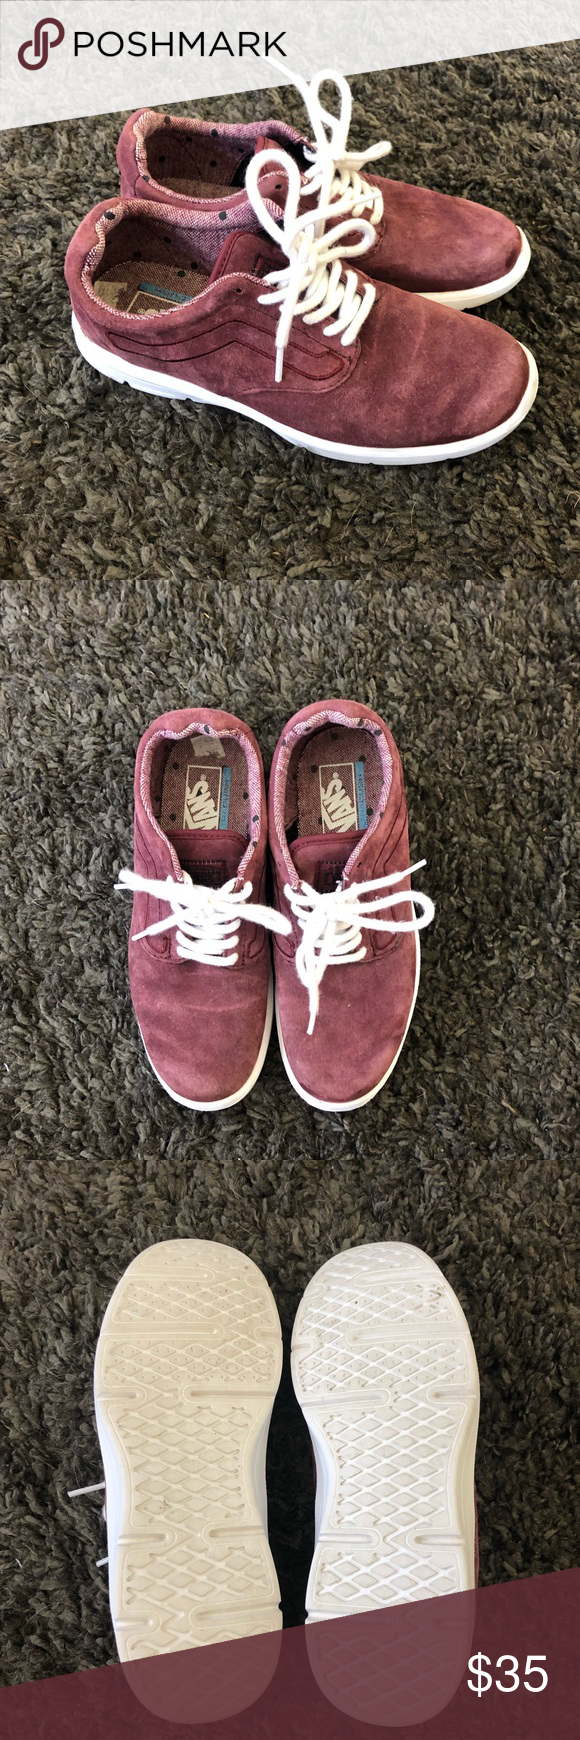 0ee1980d55cc74 Maroon Vans Super cute shoes! Only worn a handful of times so they re in  great condition. Suede like material. Vans Shoes Sneakers